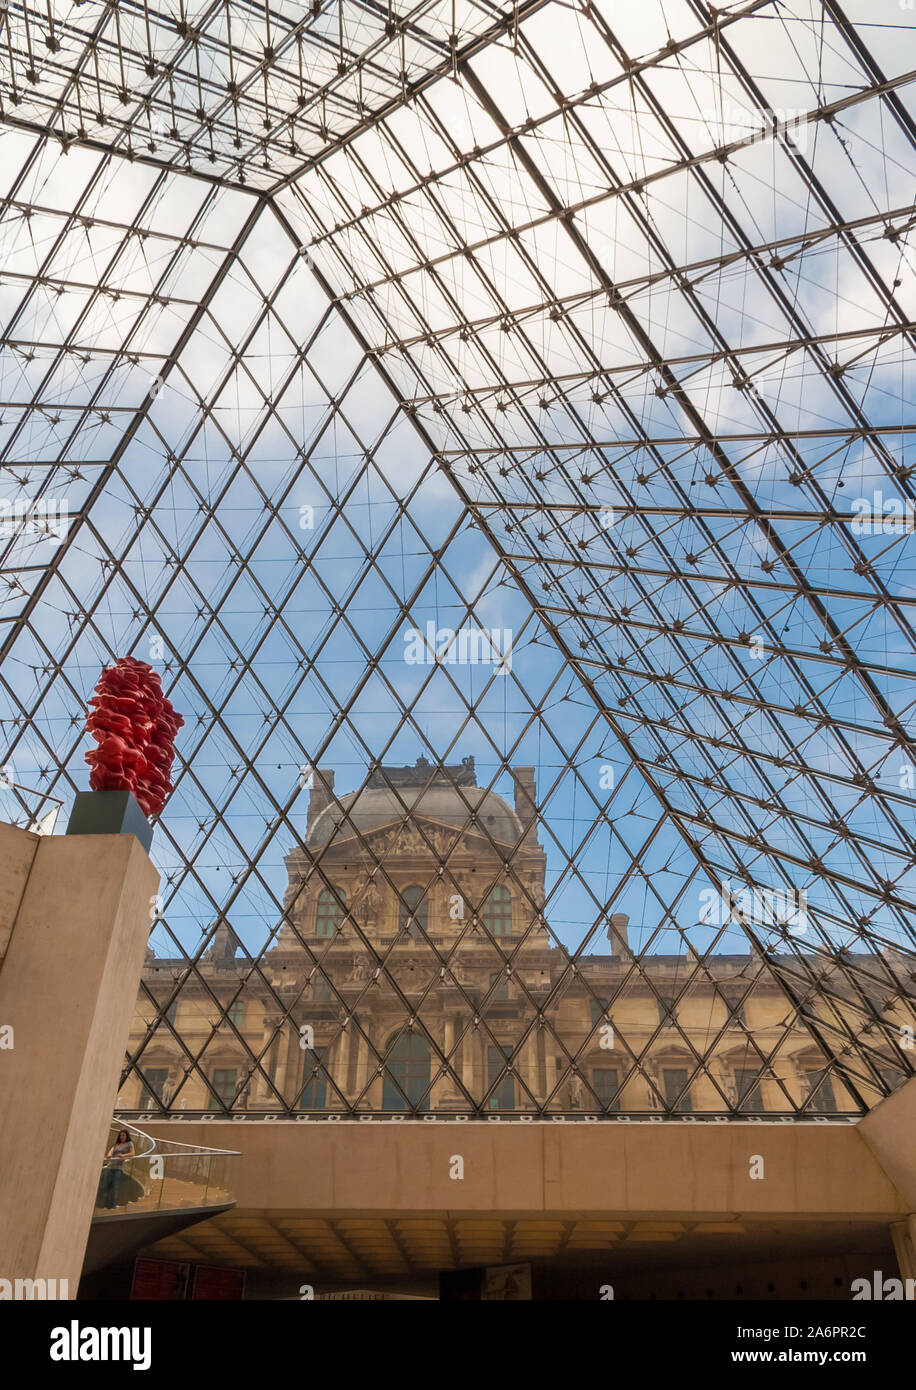 Great portrait view of the Richelieu Wing through the glass of the Louvre Pyramid in Paris from the underground lobby with the red sculpture Versus of... Stock Photo